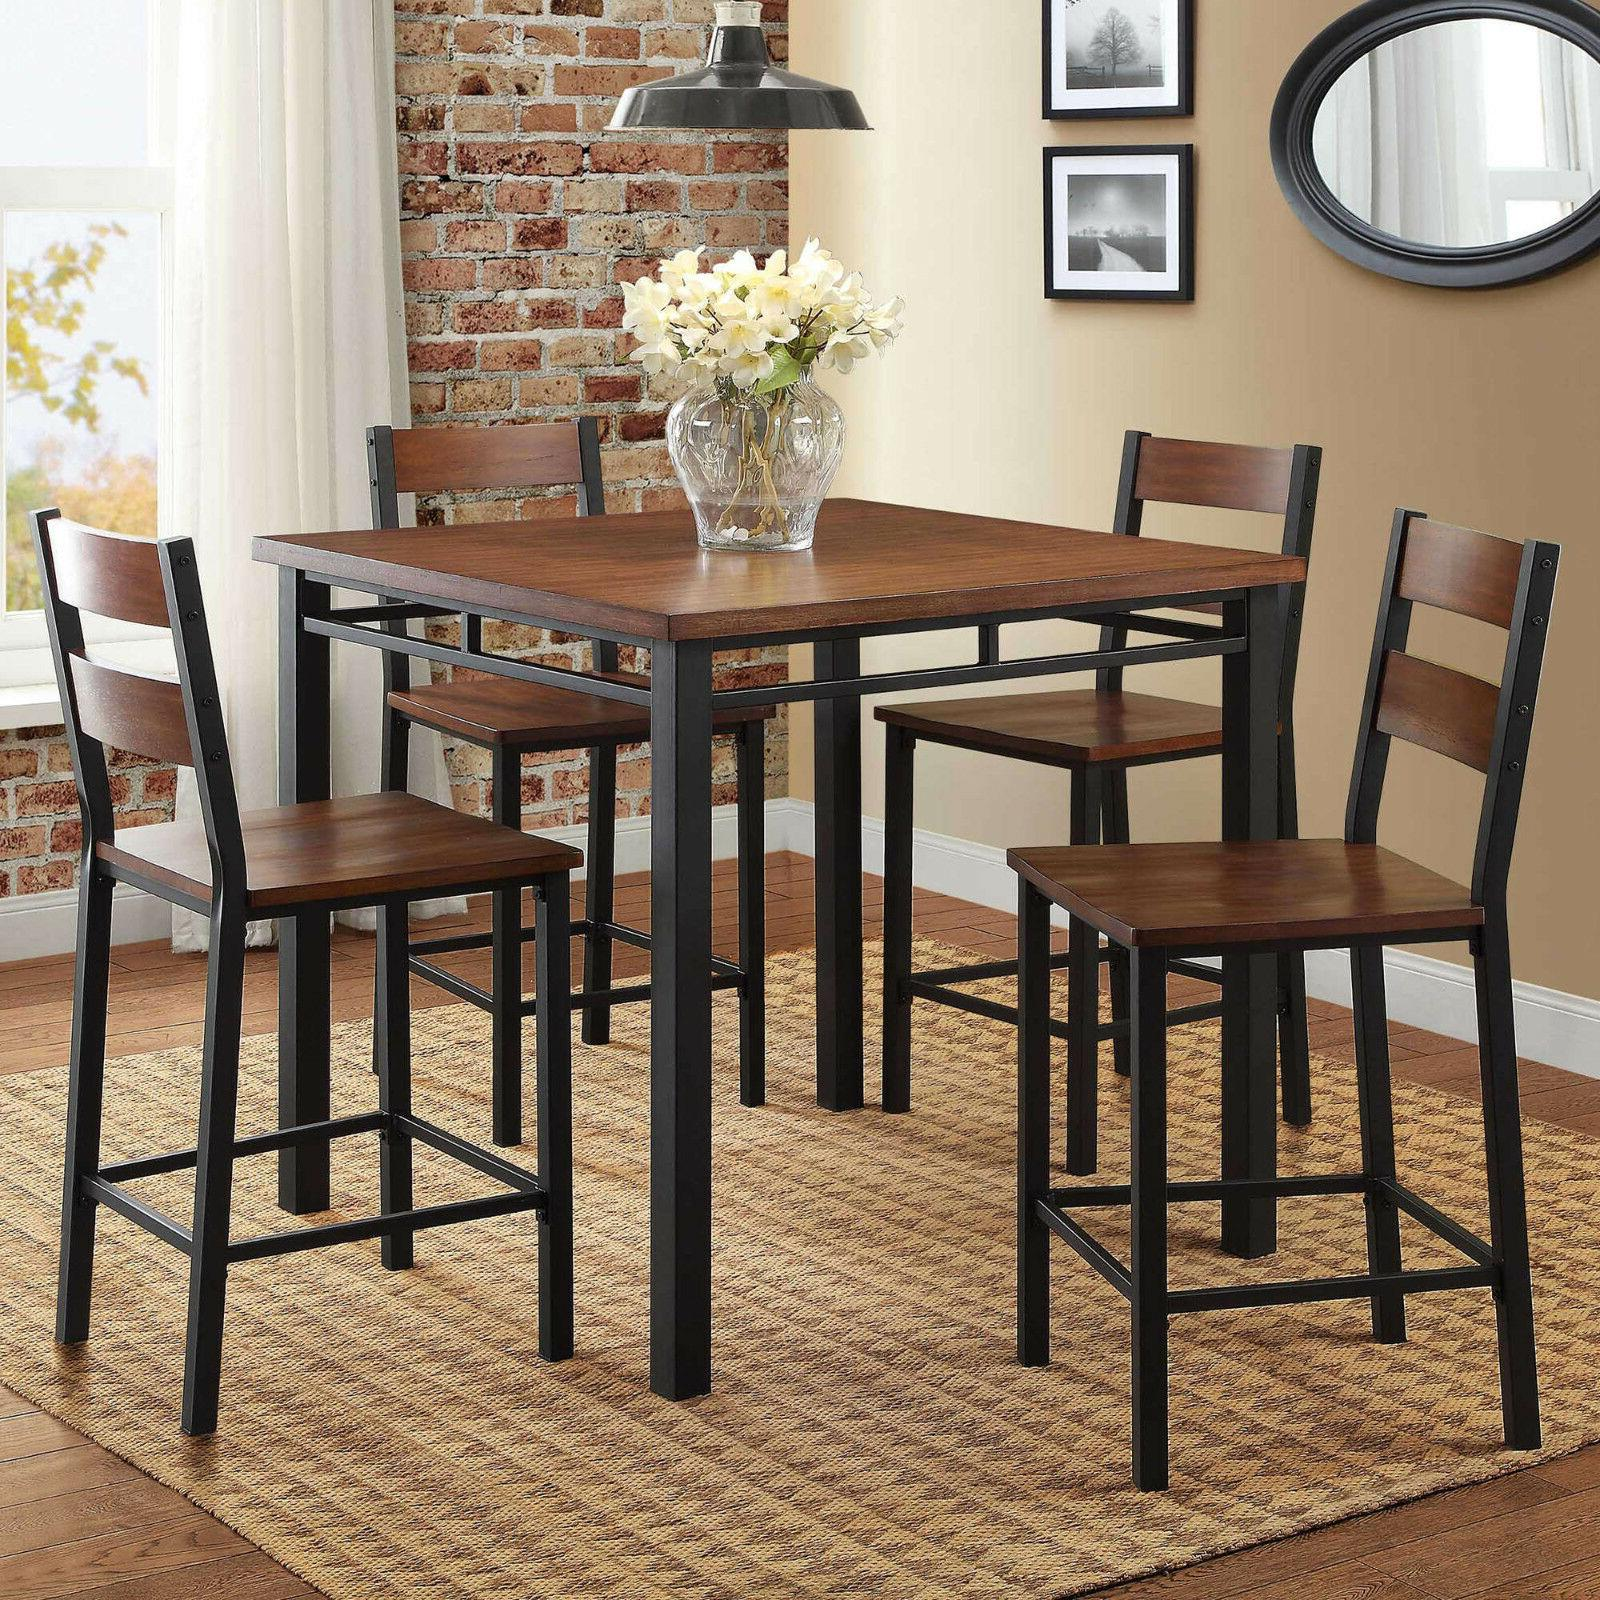 5 piece rustic dining table set high